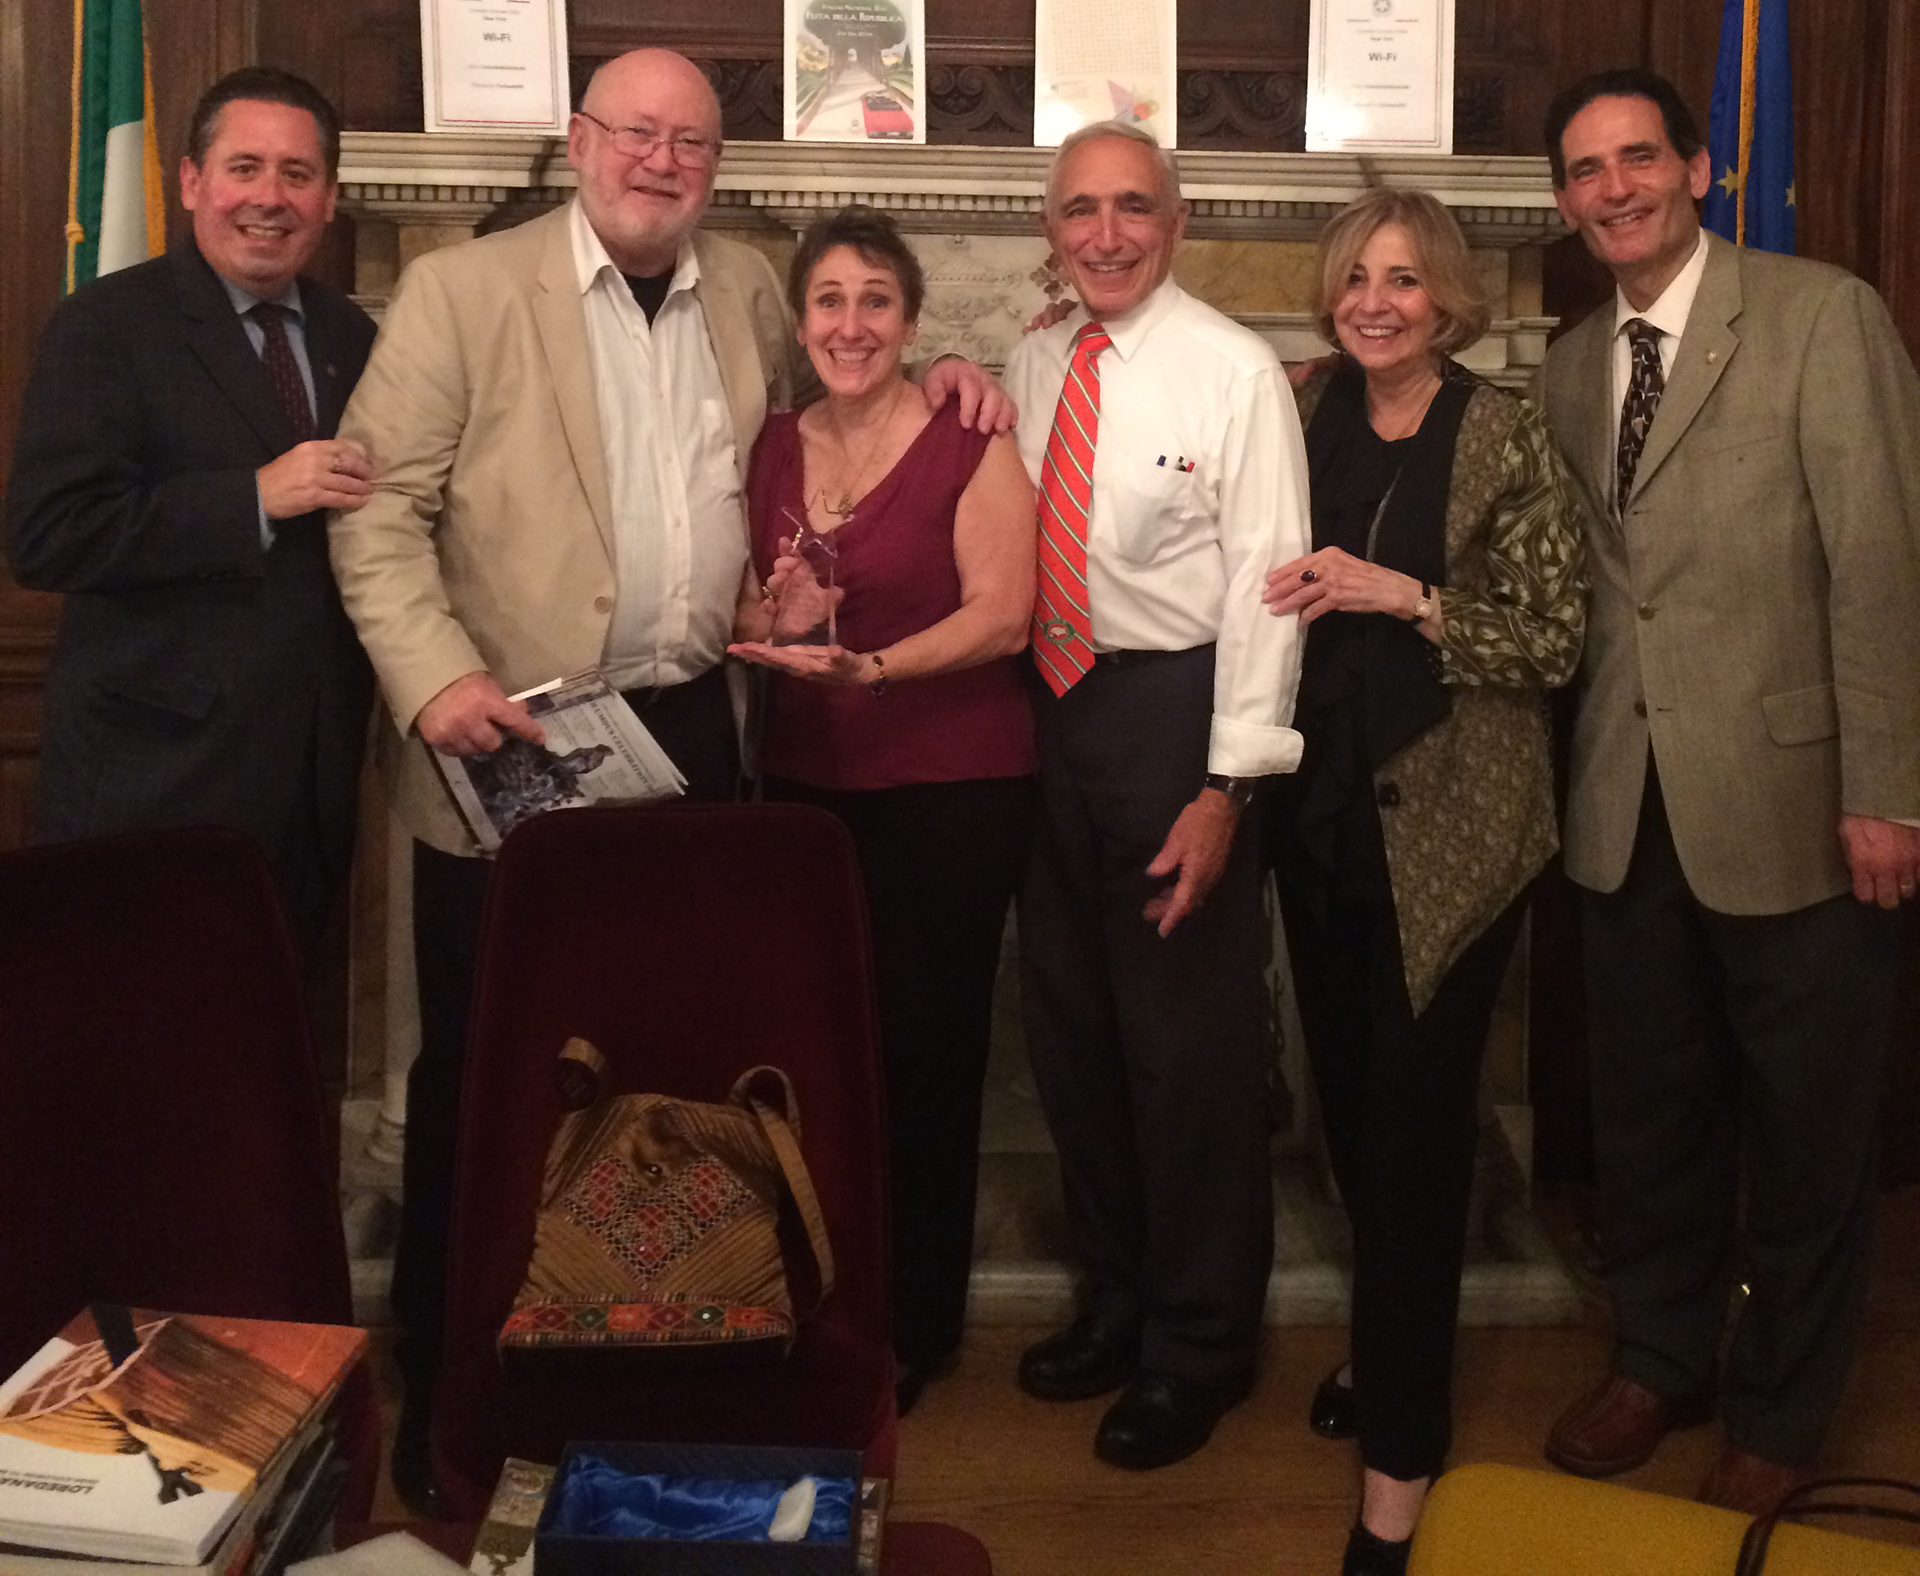 Angela Pietropinto Honored at Italian Consulate